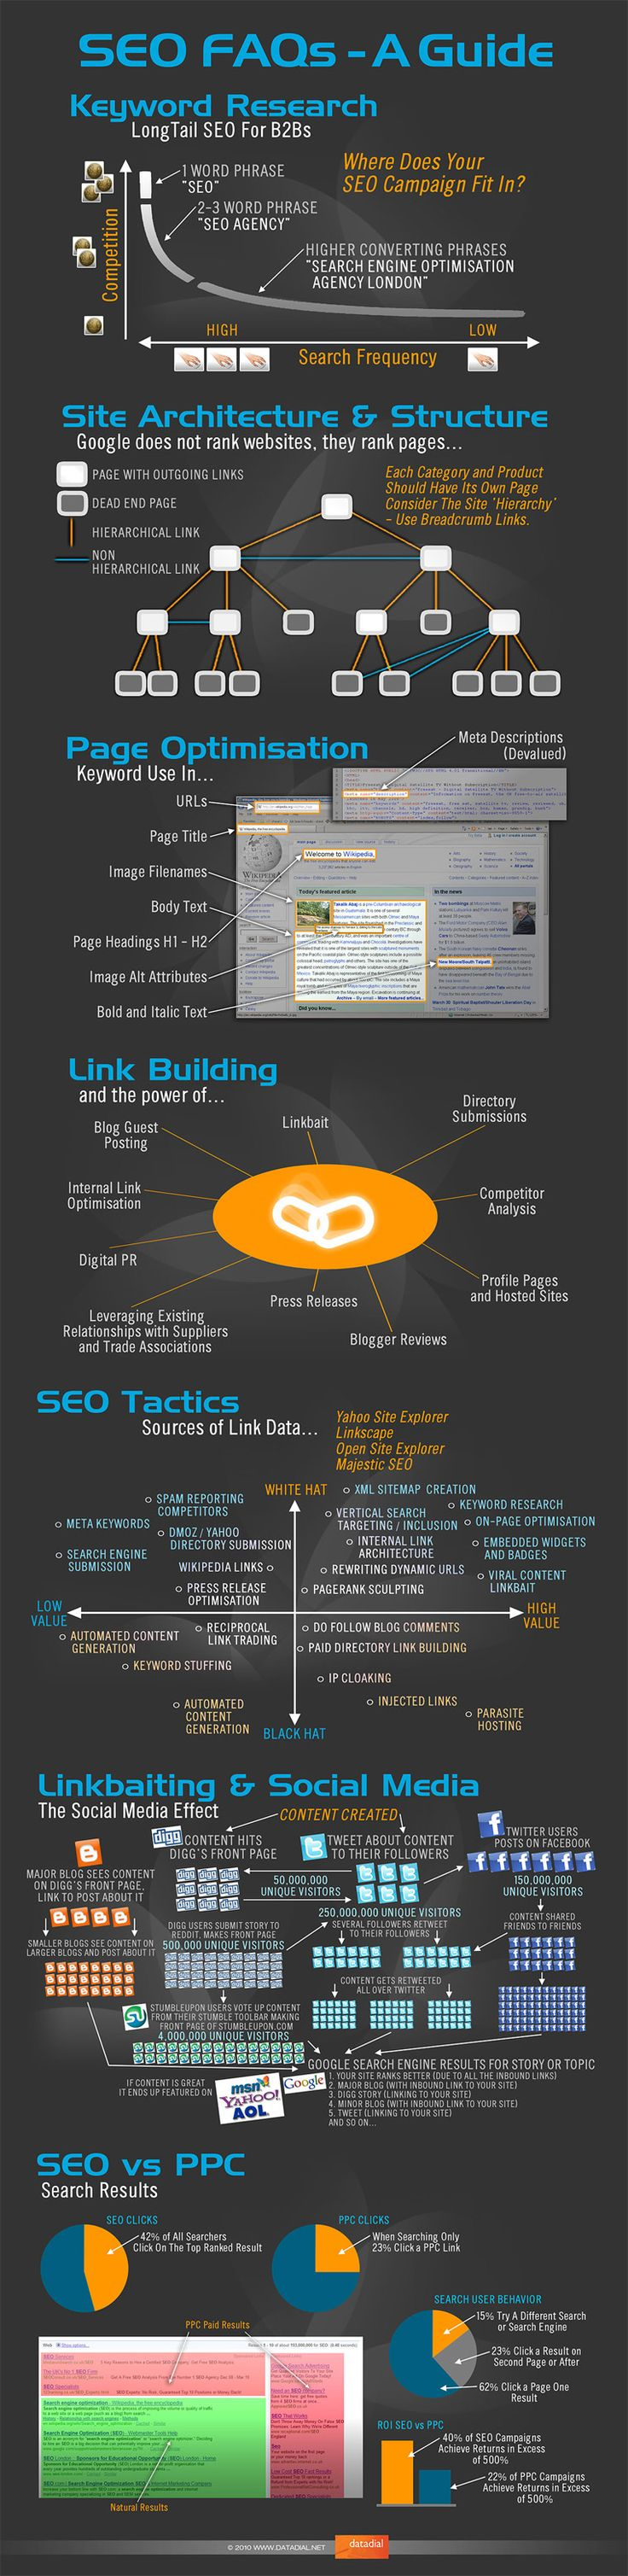 Search engine marketing in one simple graphic. Good luck.